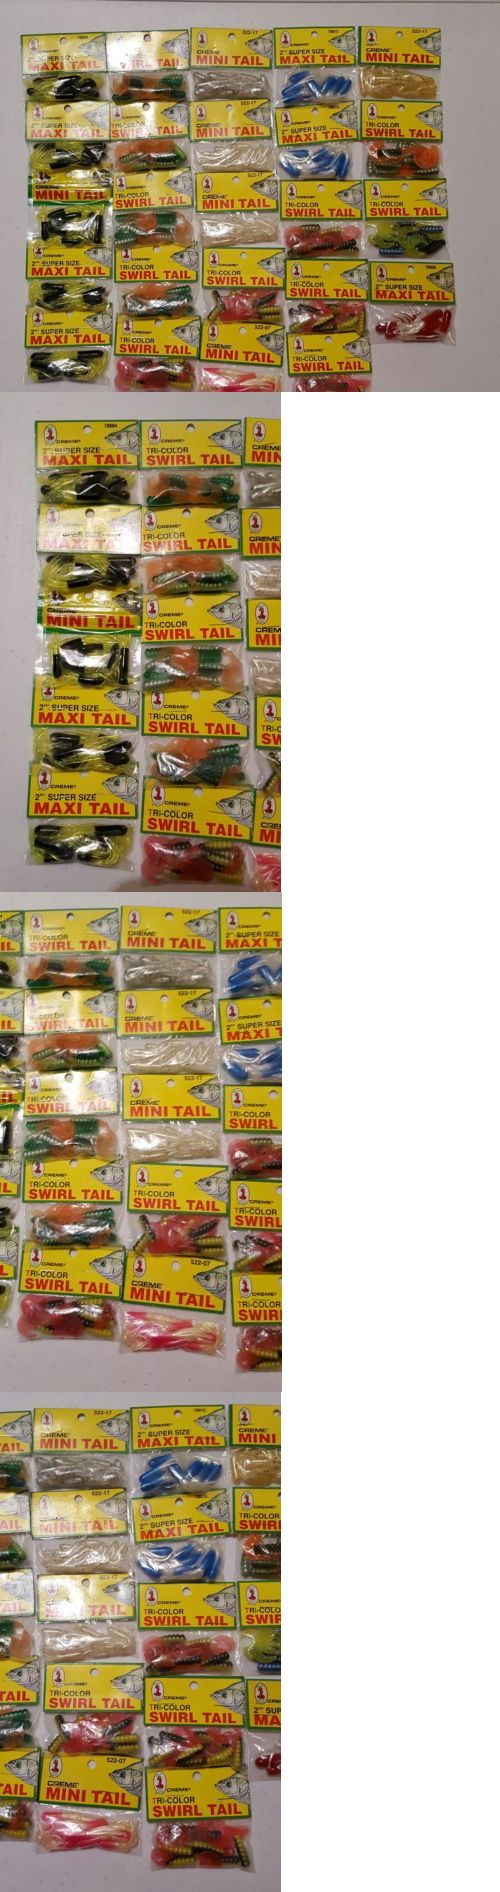 Soft Plastics 31691: Huge Creme Maxi Tail Swirl Tail Mini Tail Lure Lot Crappie 24 Packages -> BUY IT NOW ONLY: $30 on eBay!